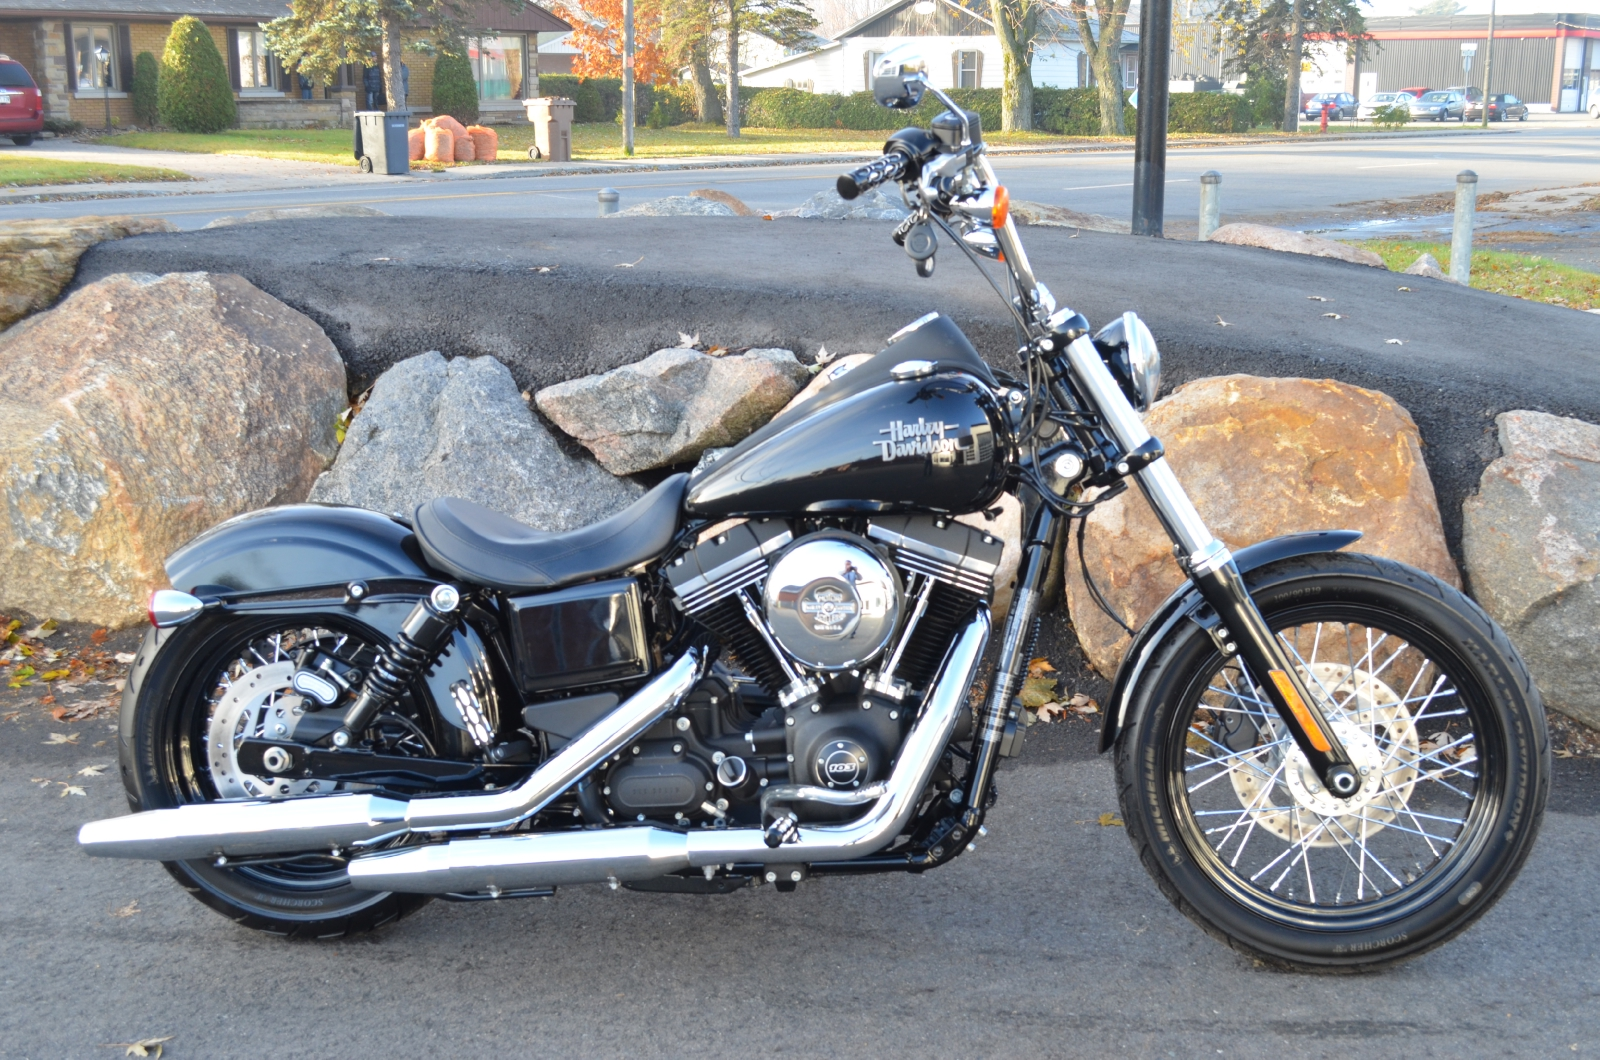 2014 harley davidson fxdb dyna street bob pics specs and information. Black Bedroom Furniture Sets. Home Design Ideas